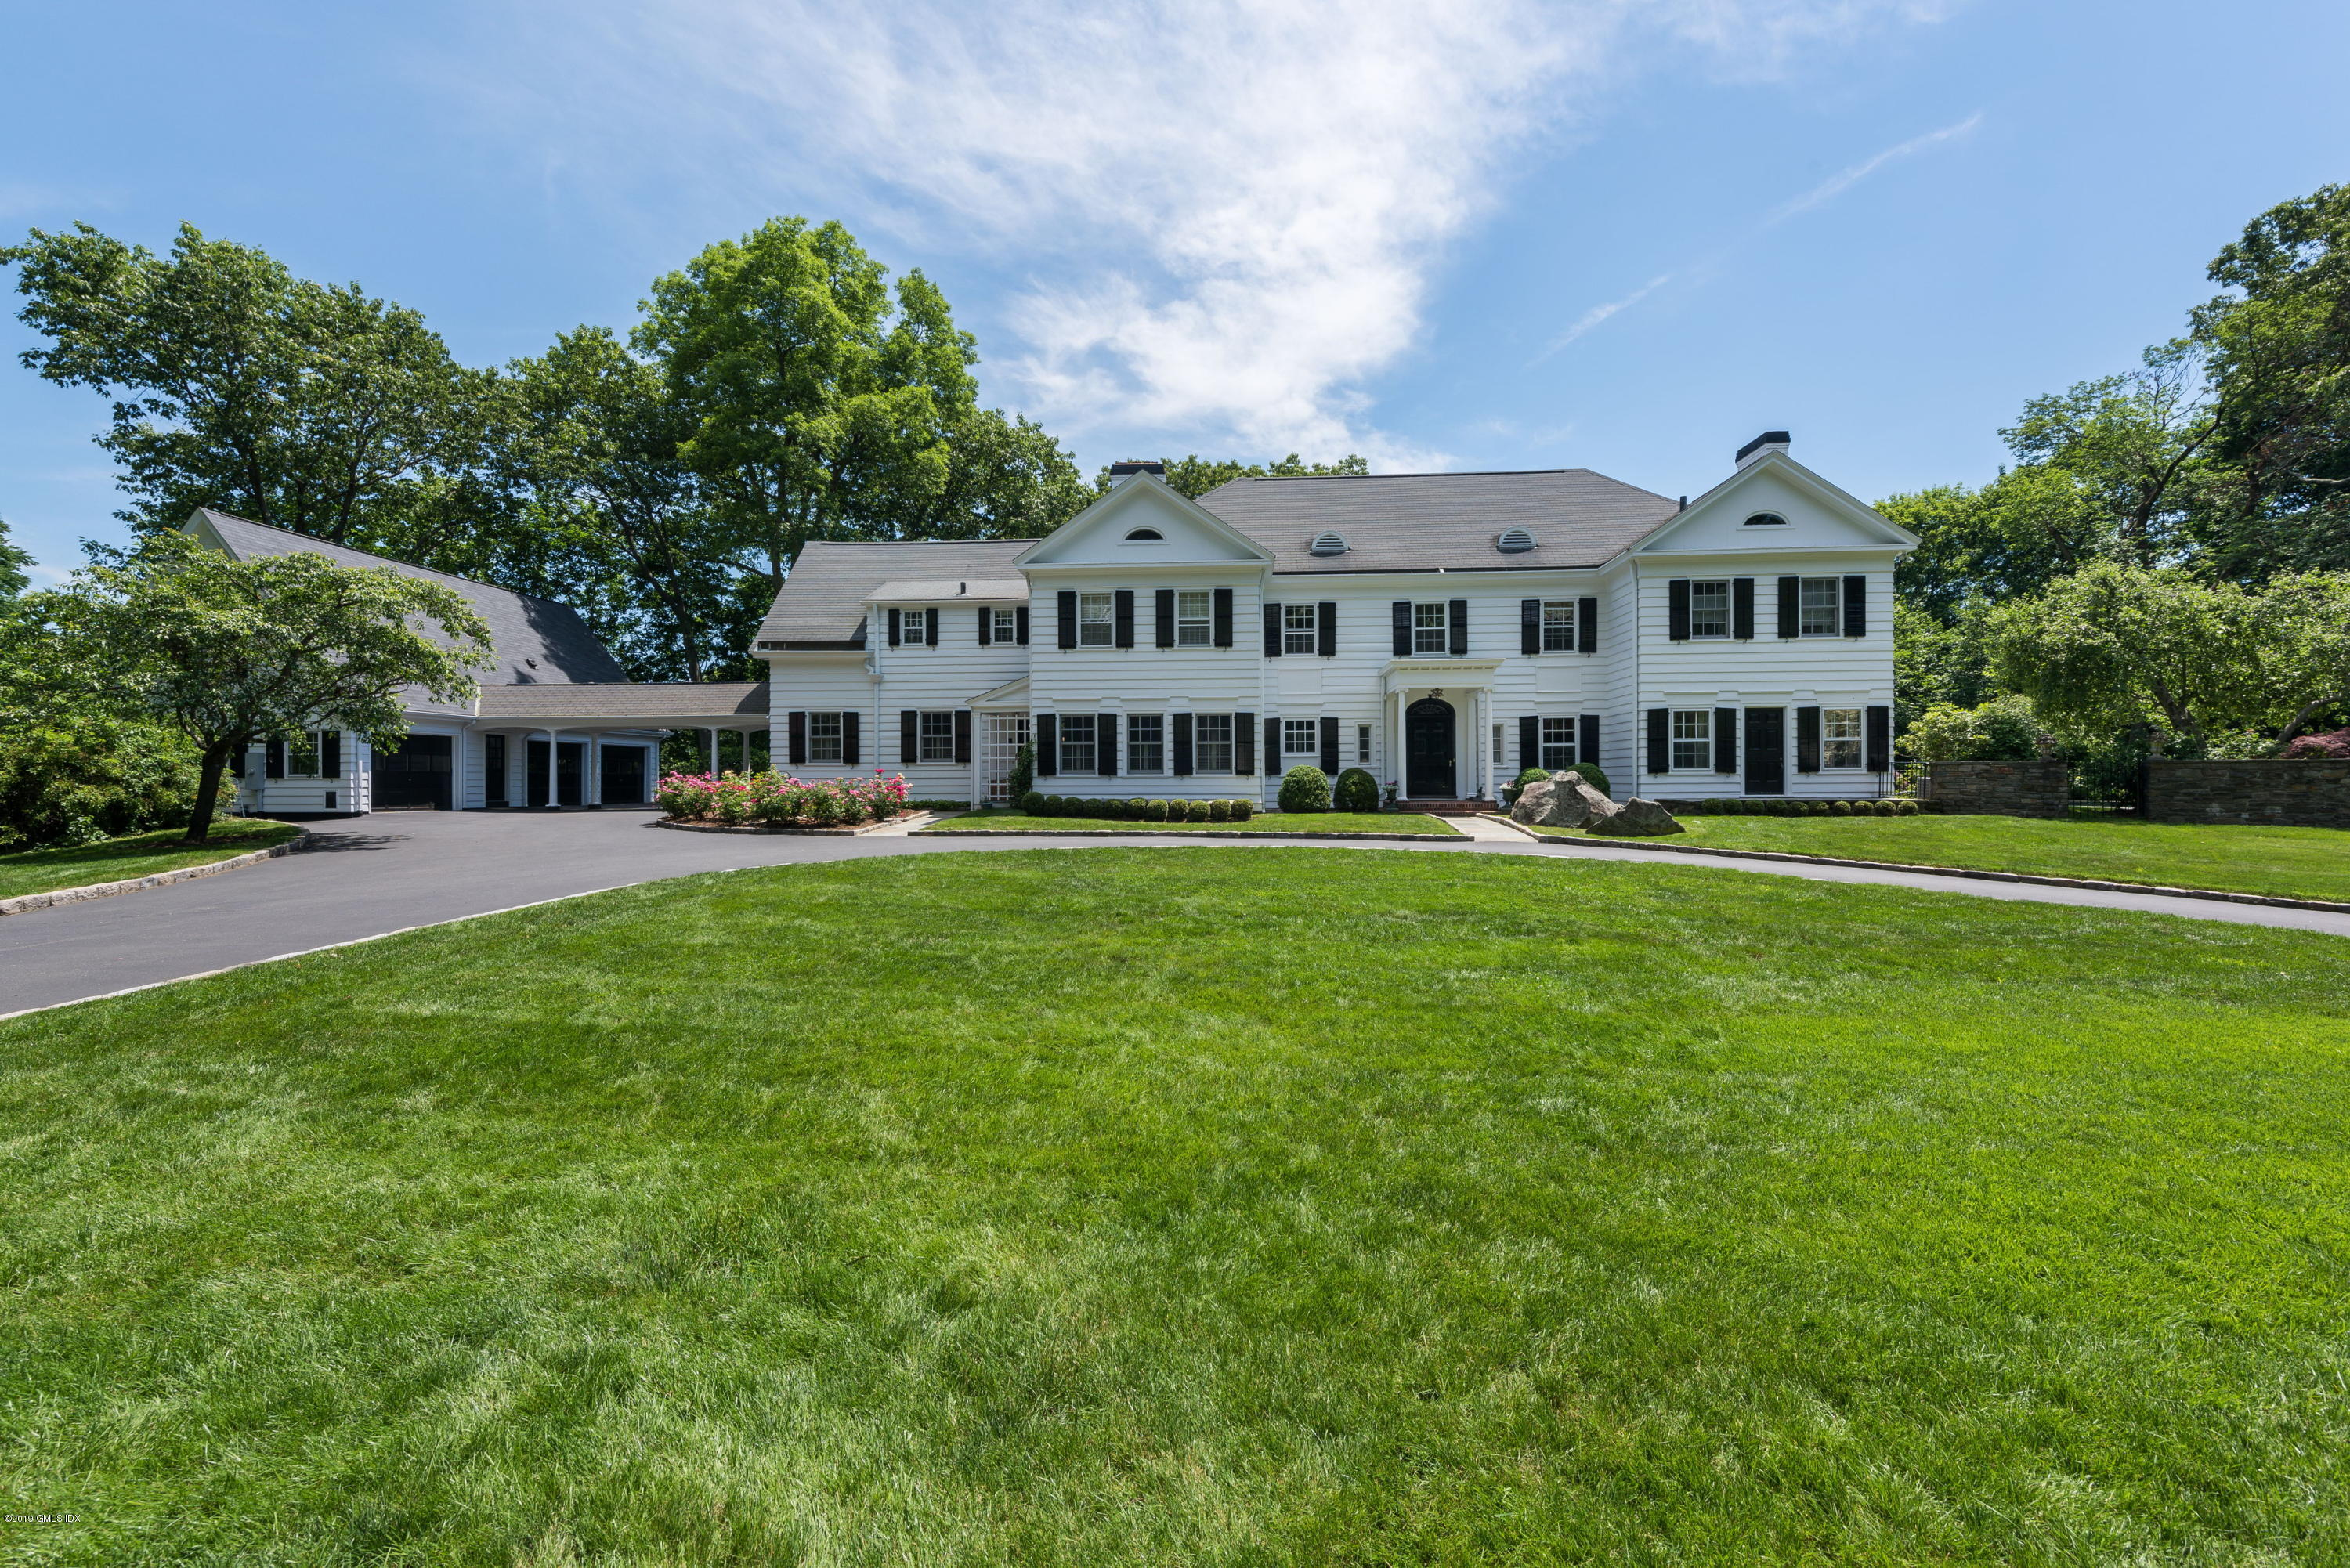 364 Cedar Hill Greenwich,Connecticut 06830,6 Bedrooms Bedrooms,6 BathroomsBathrooms,Single family,Cedar Hill,105828